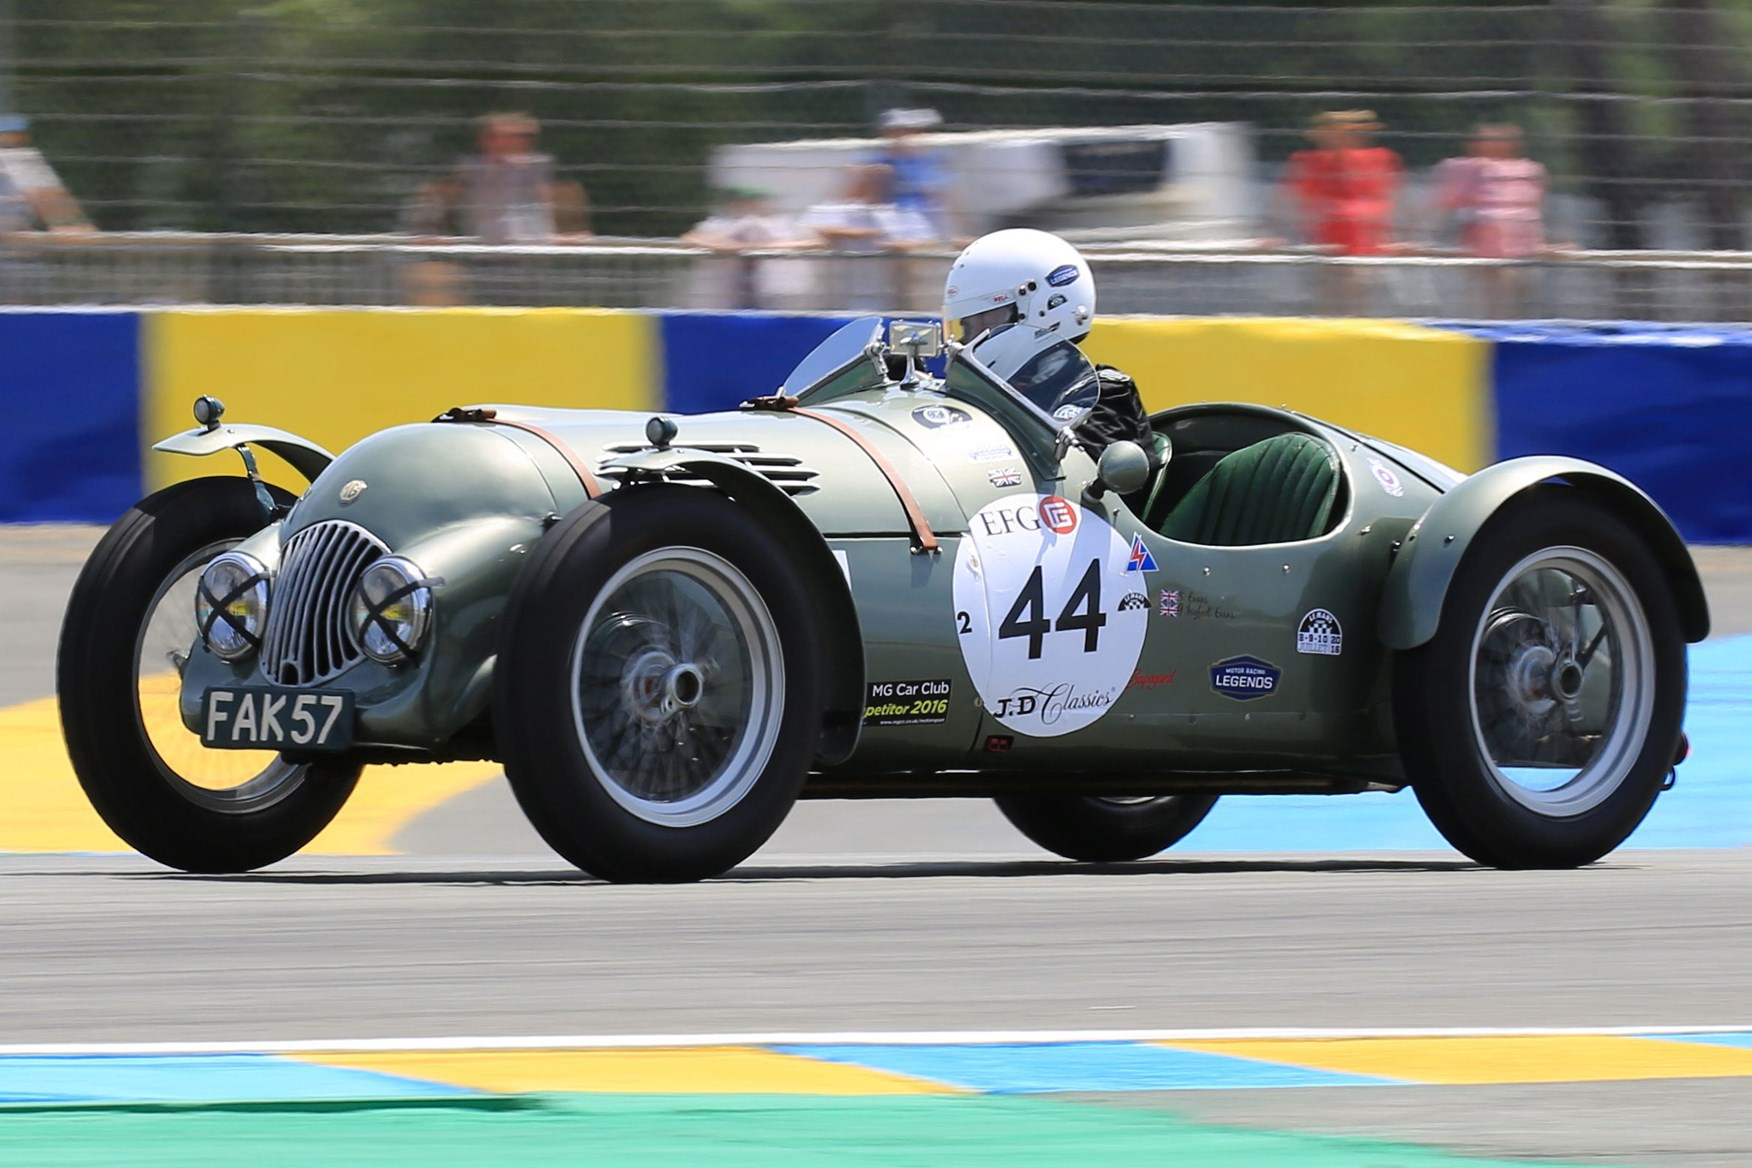 Le Mans Heat Fak 57 A Very Elegant Kind Of Old School Racer